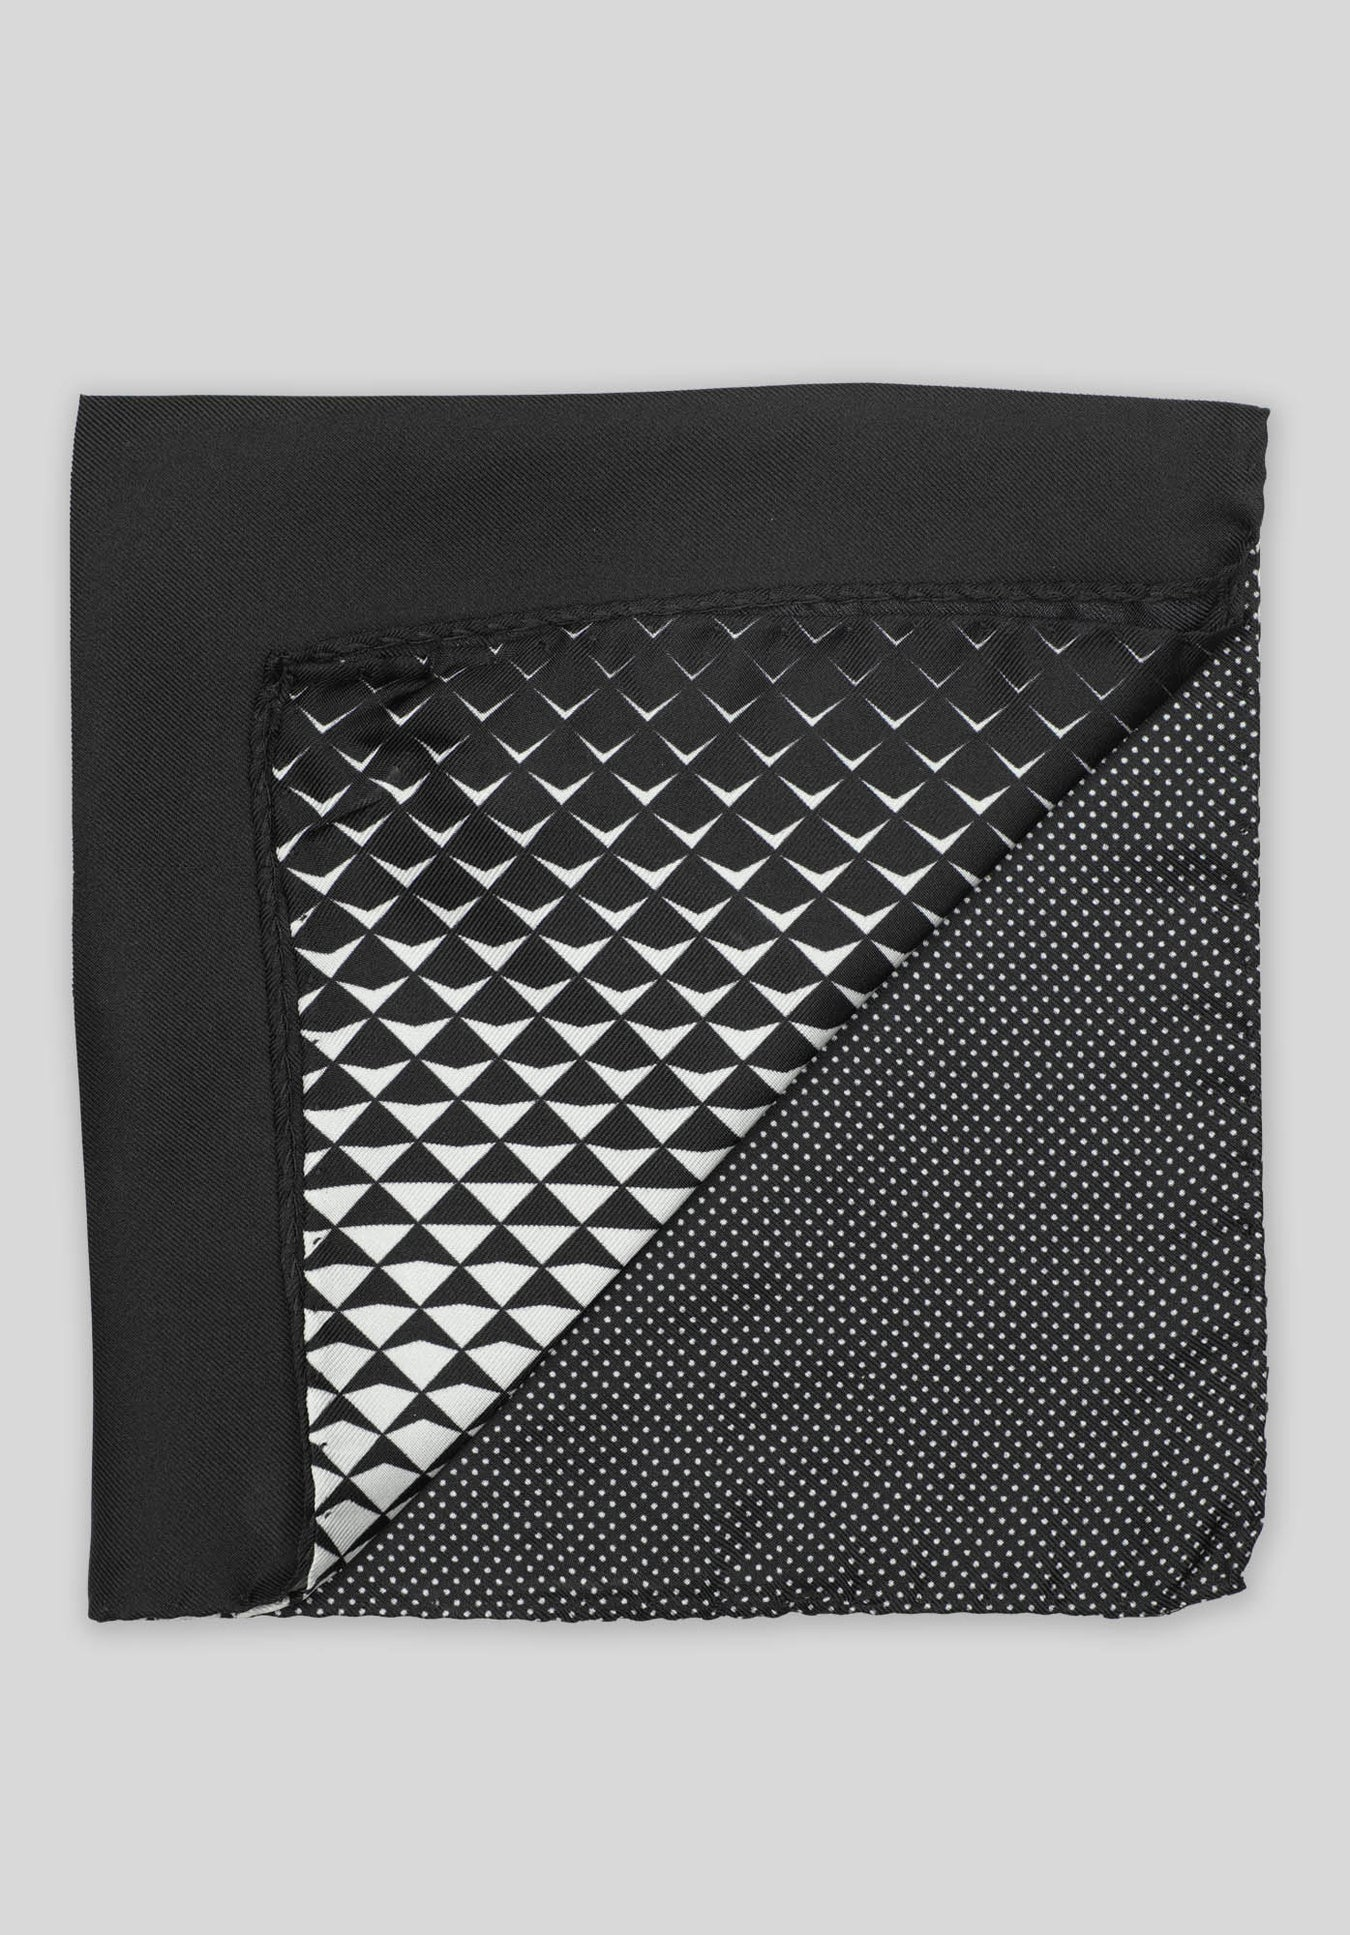 4-WAY GEOMETRIC POCHETTE - Black